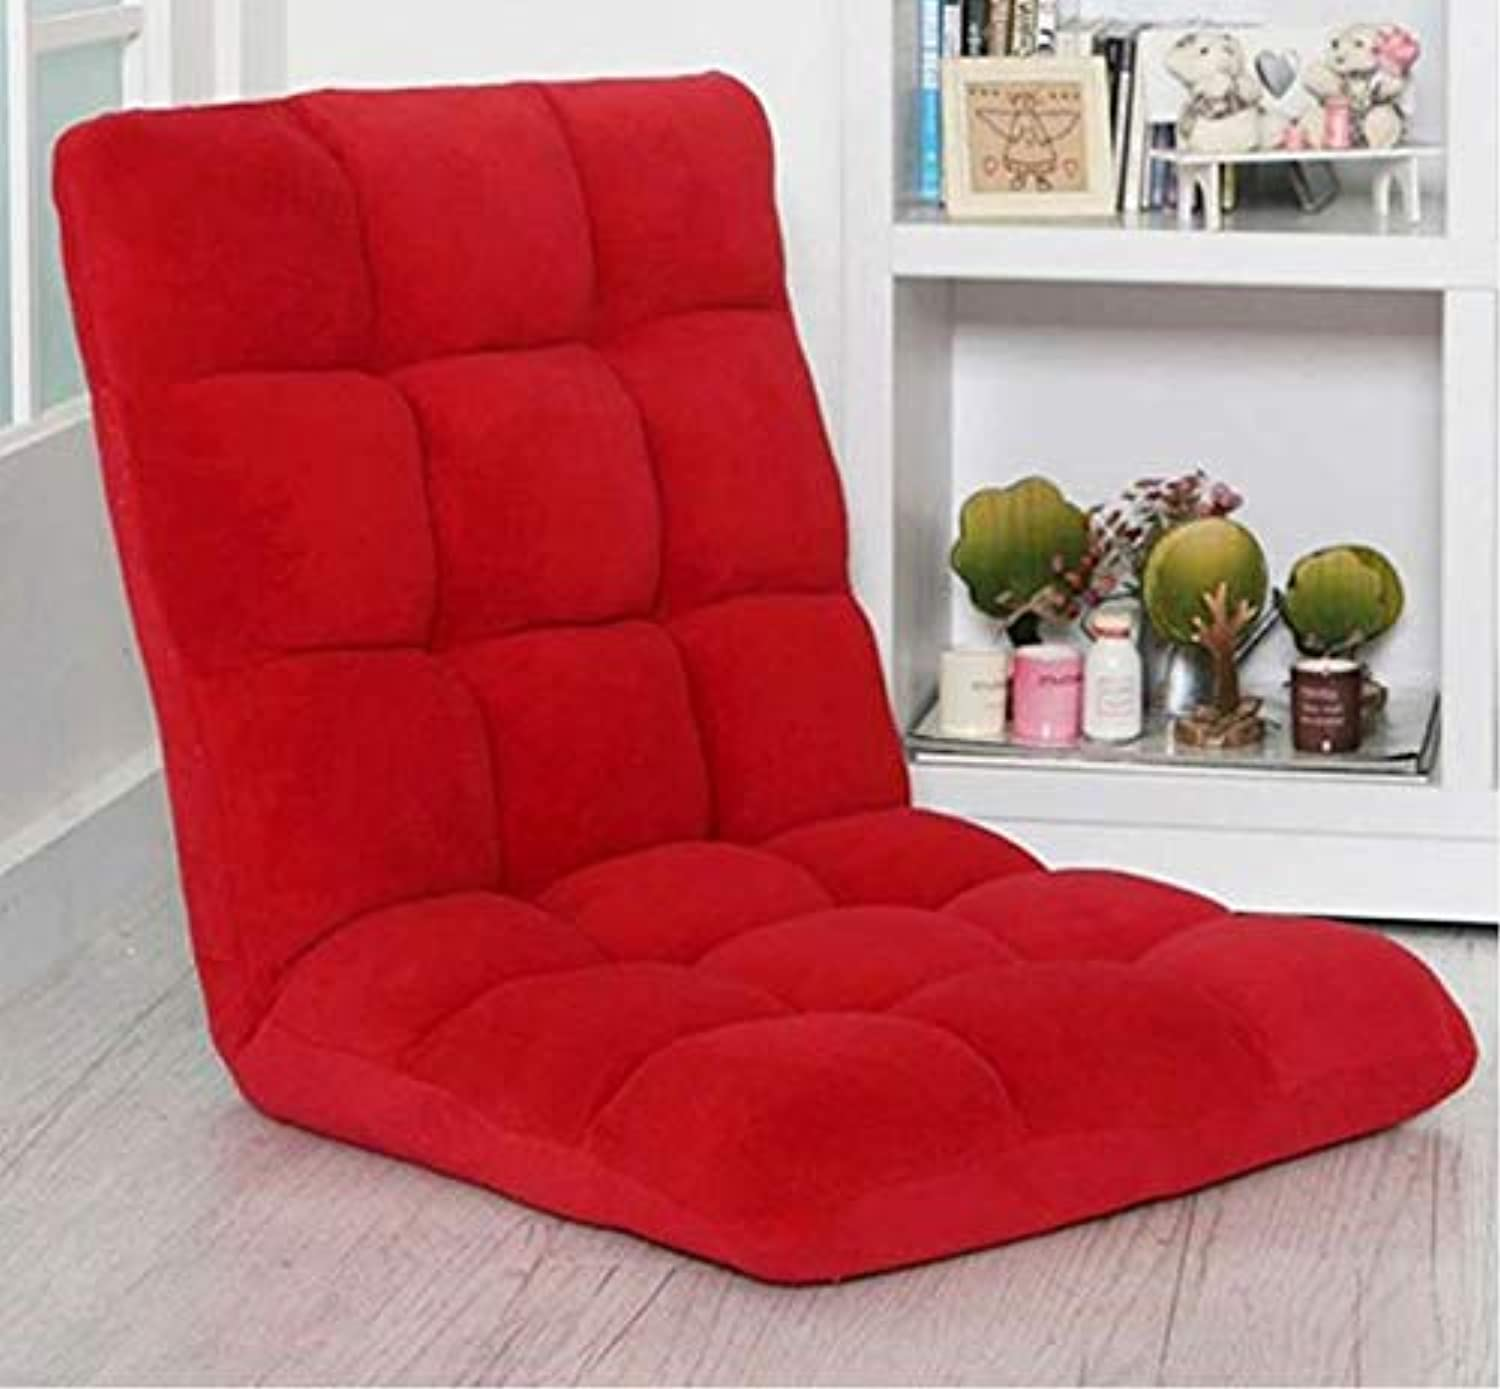 Varossa Reclining Yoga Chair Recliner Sofabed Red